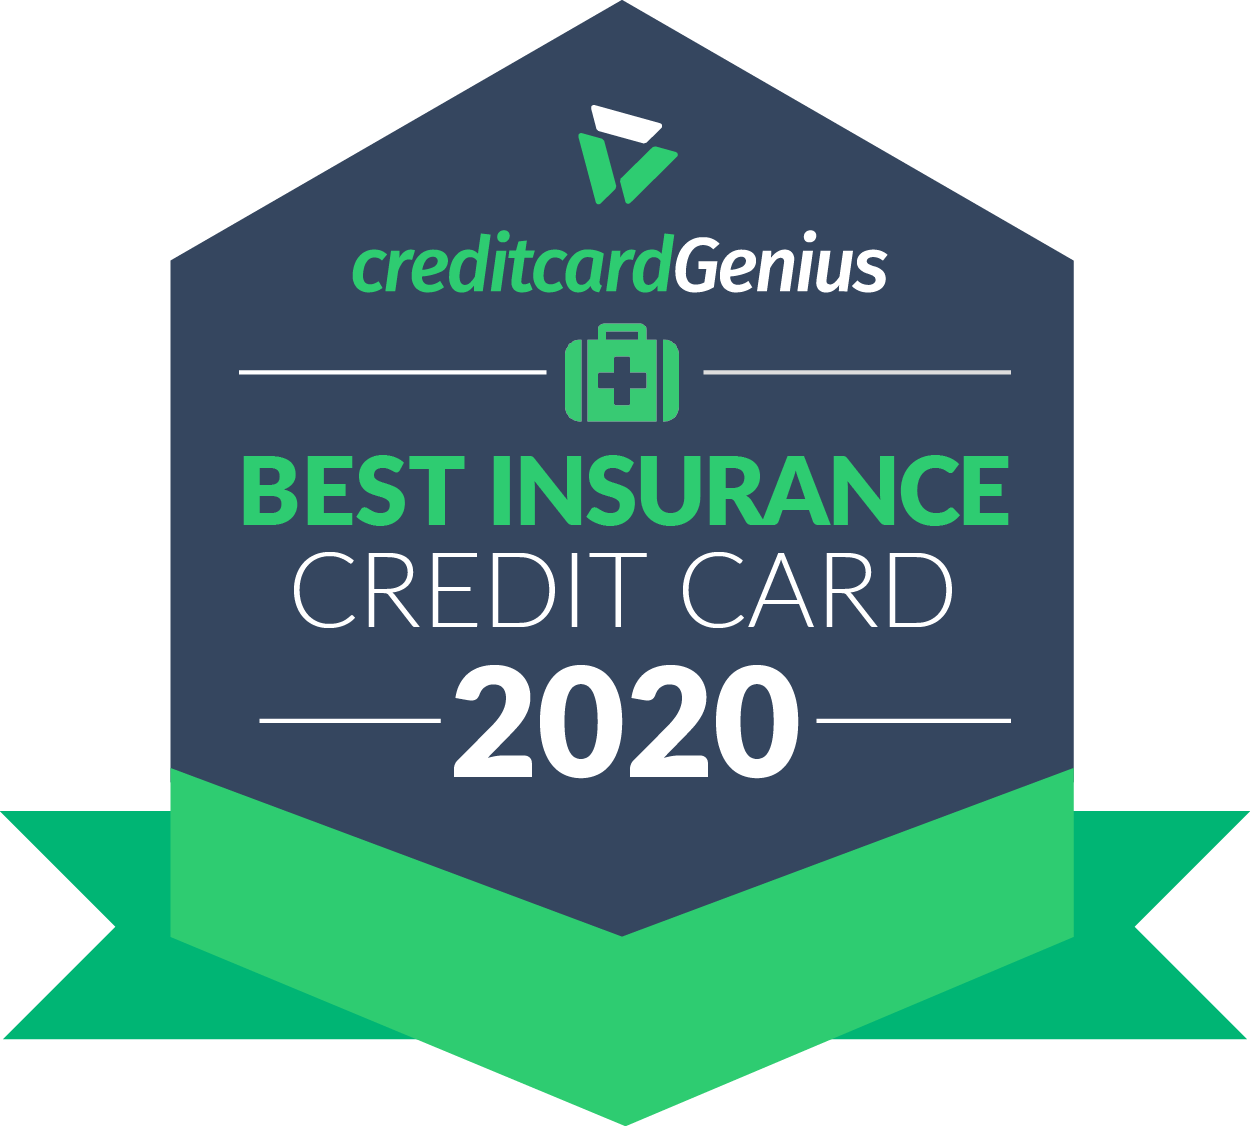 Best credit card travel insurance in Canada for 2020 award seal